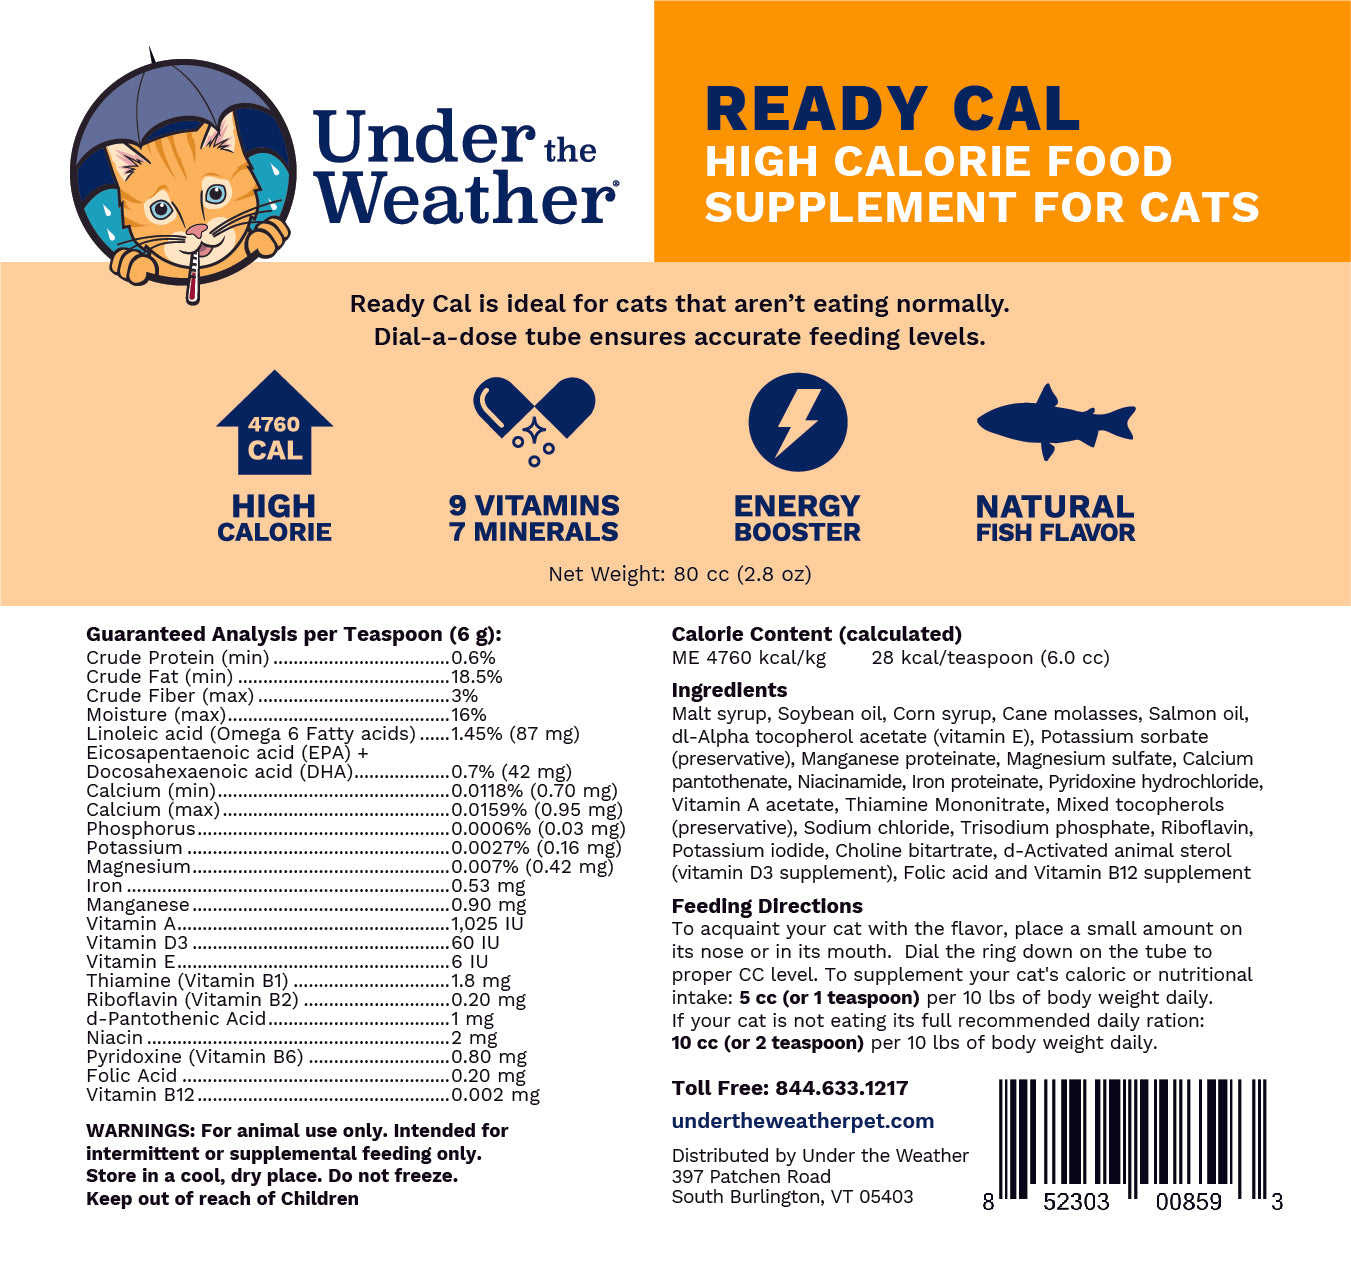 Ready Cal High-Calorie Supplement For Cats - 80cc